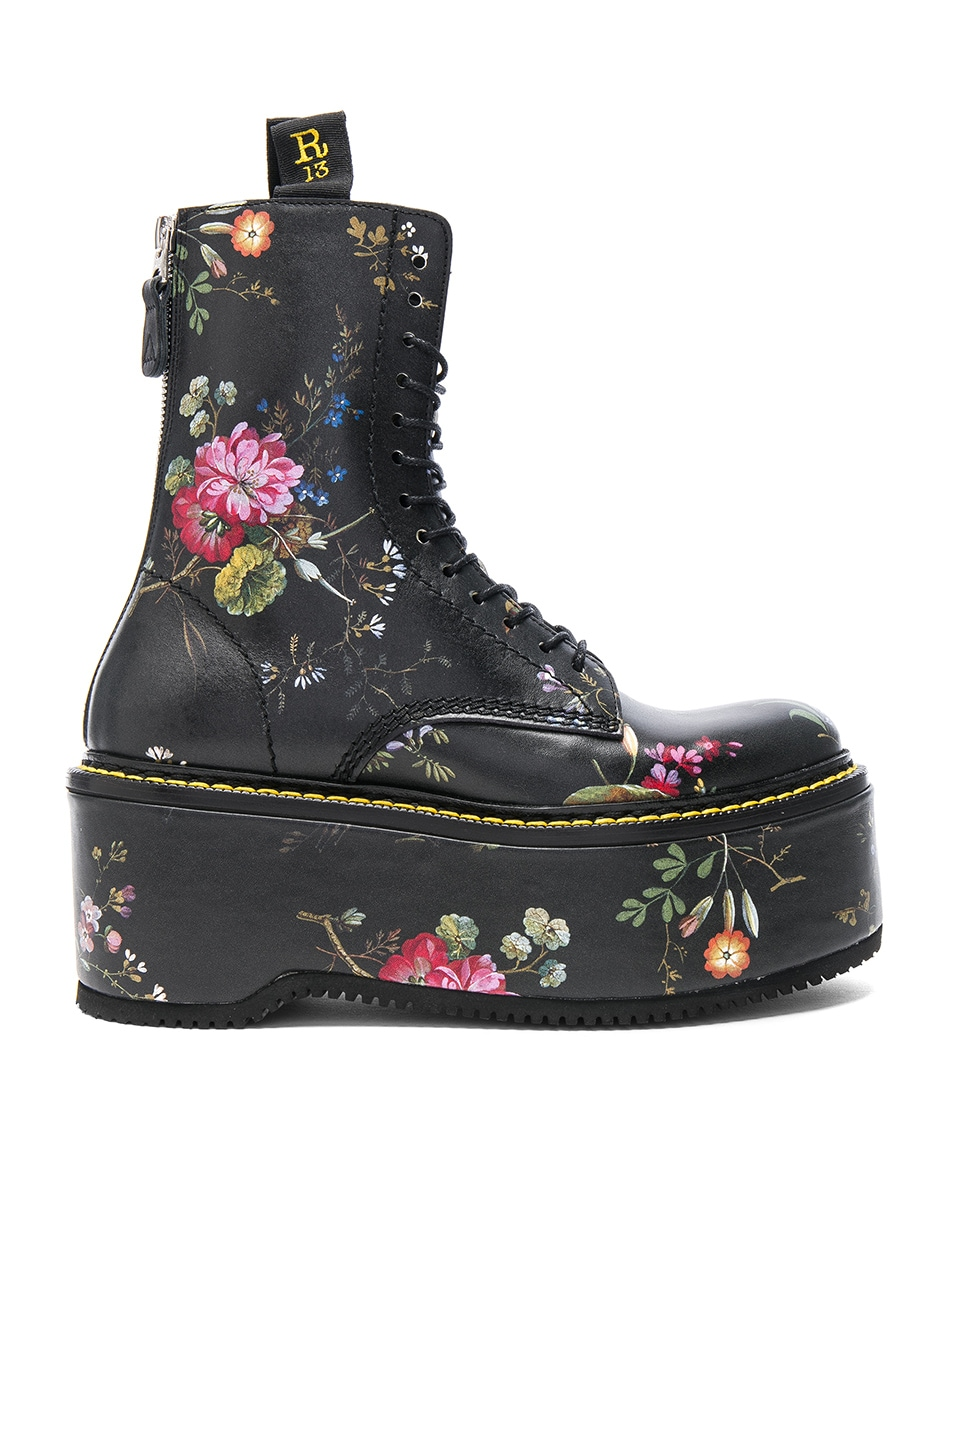 Image 1 of R13 Leather Double Stack Boots in Black Floral